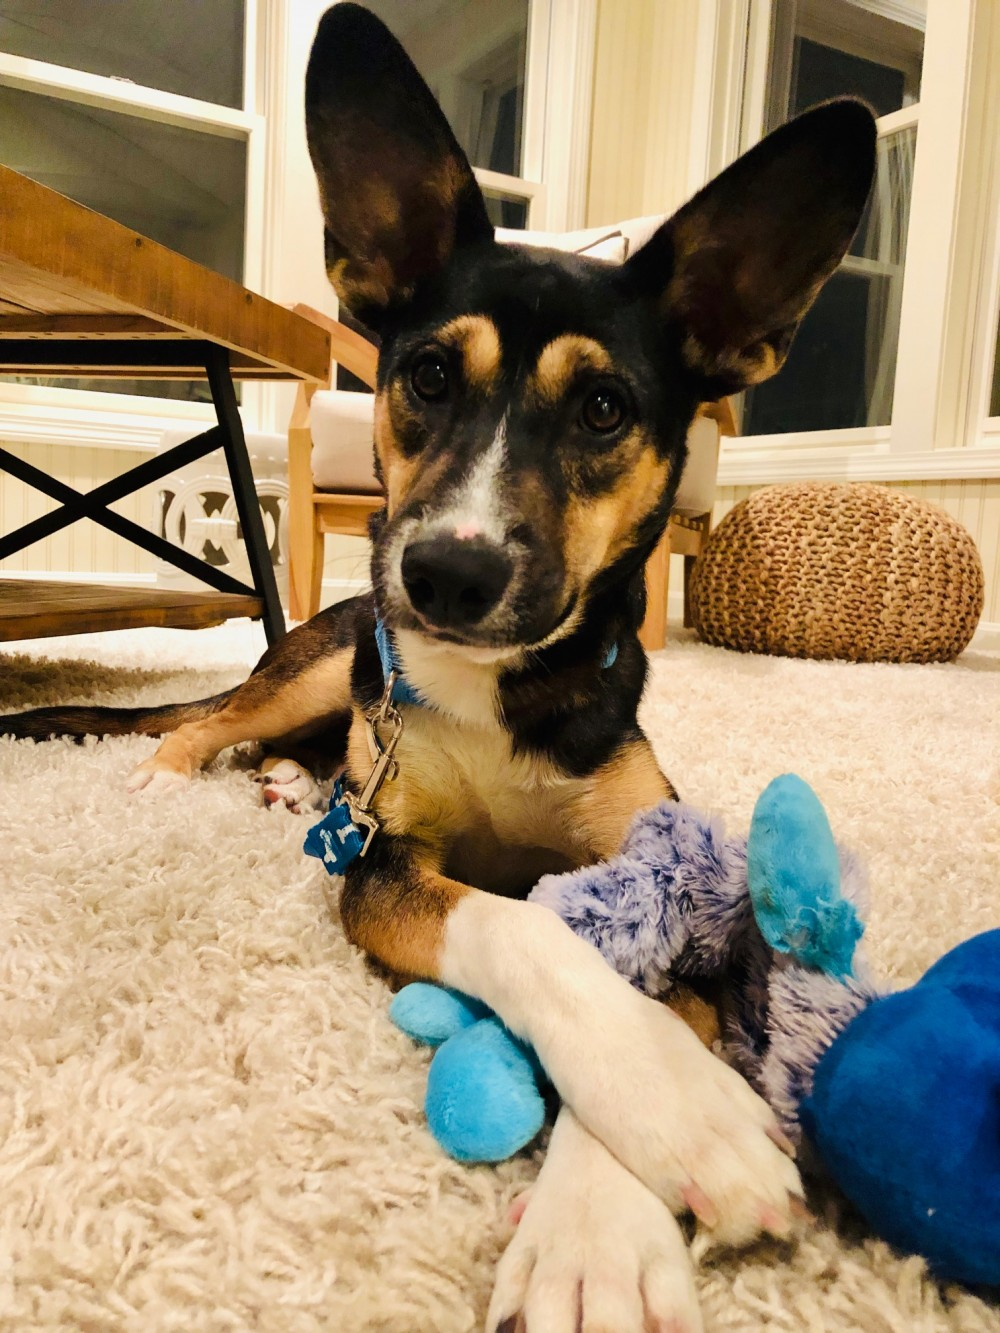 3c5fa16907 It is quite a crowdpleaser in his new home of New Hampshire, where he is  enjoying lots of plush toys, ...